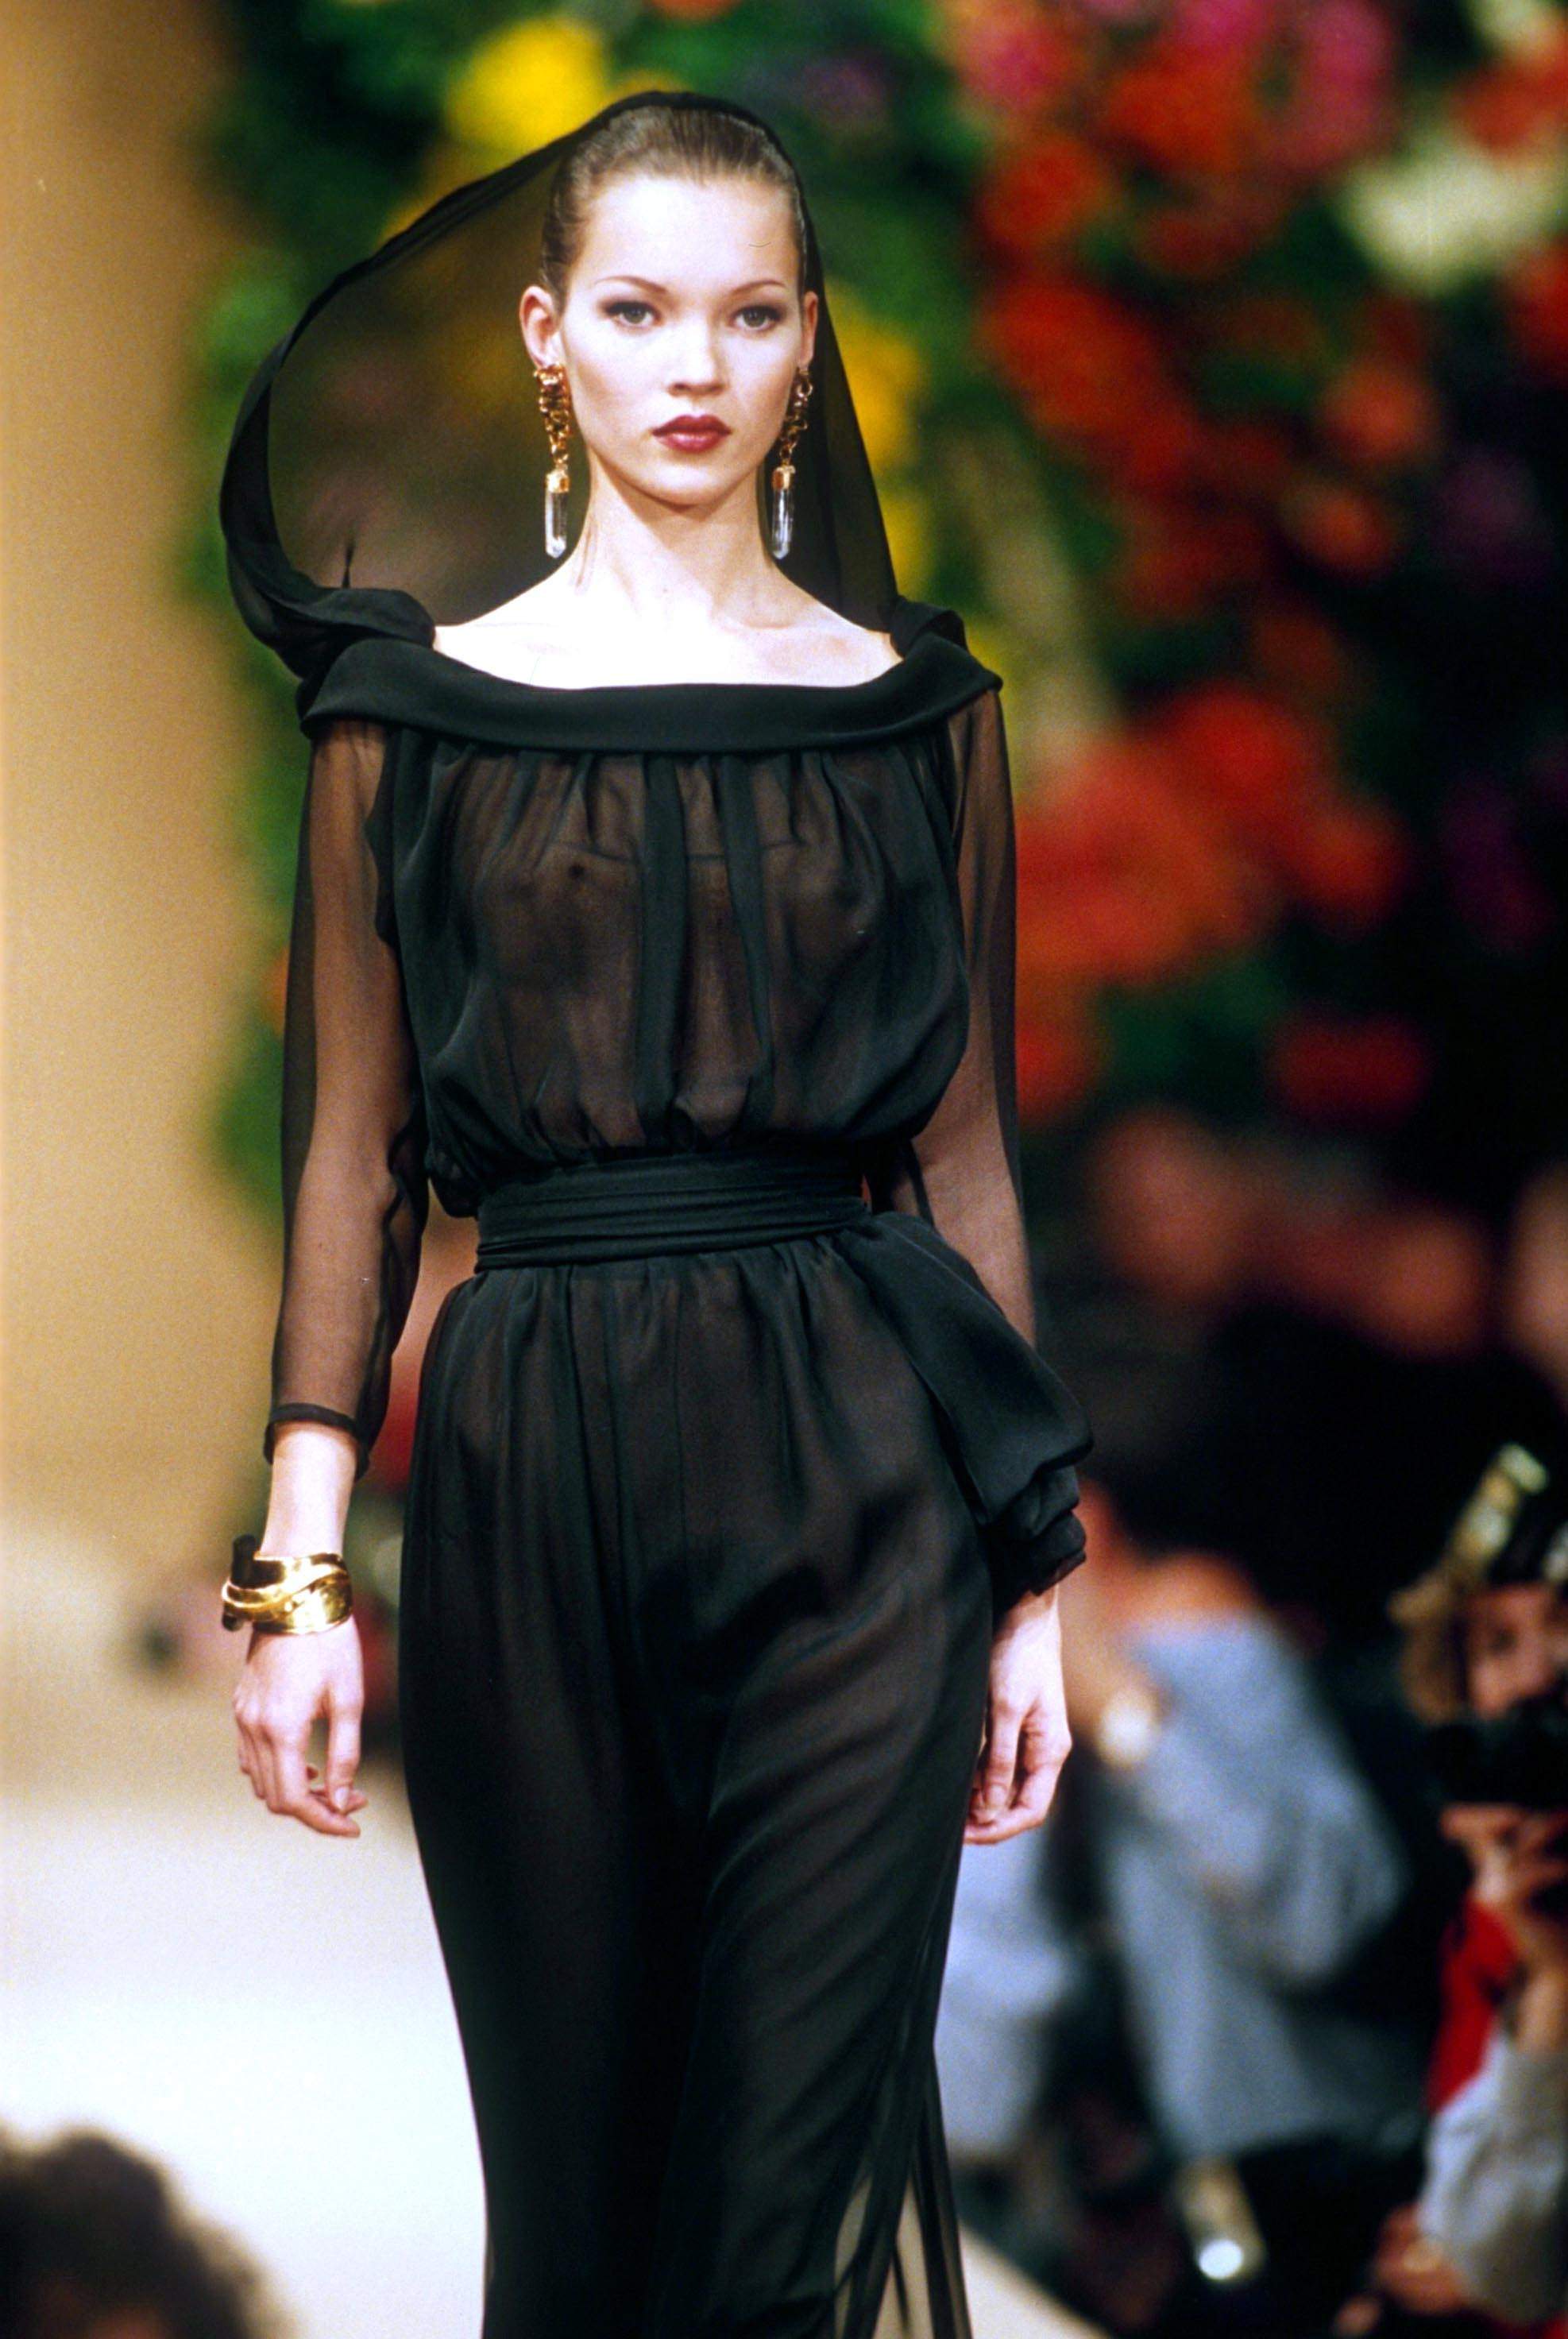 ab99642f3a9 The History of the House of Yves Saint Laurent